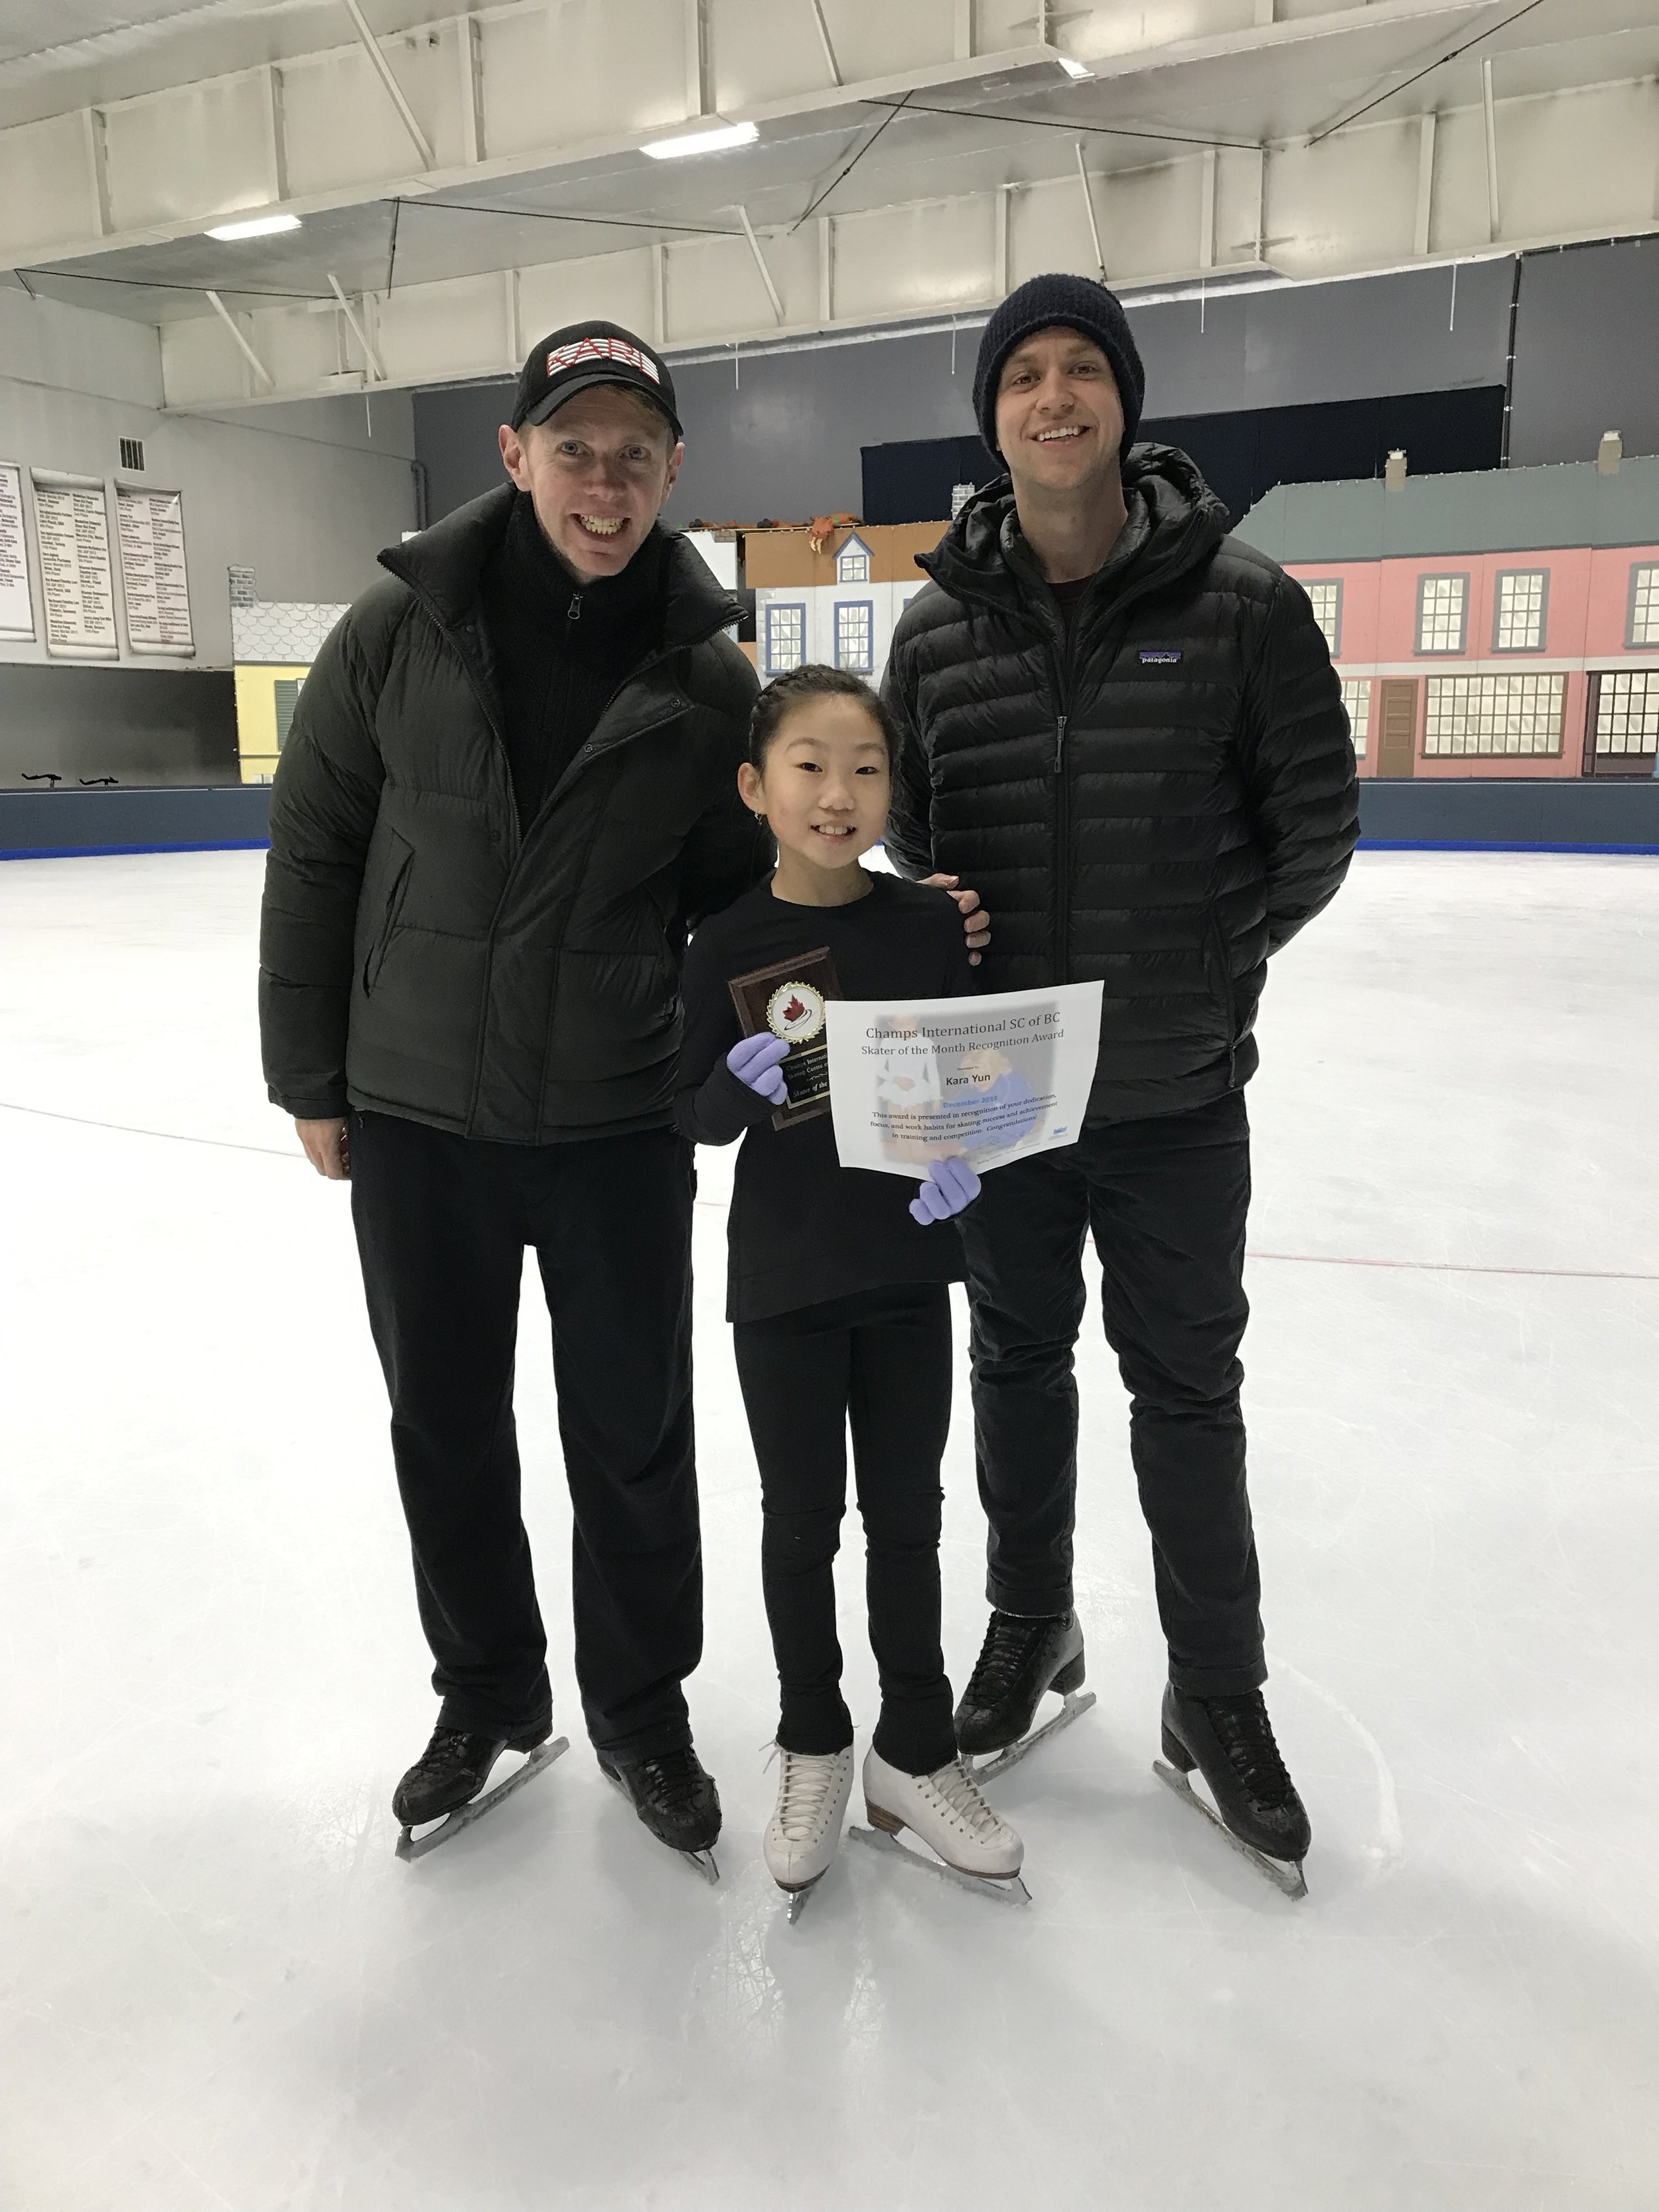 Kara Yun - Champs International Skater of the Month! (Pictured here with coaches Neil Wilson and Josh McRae)